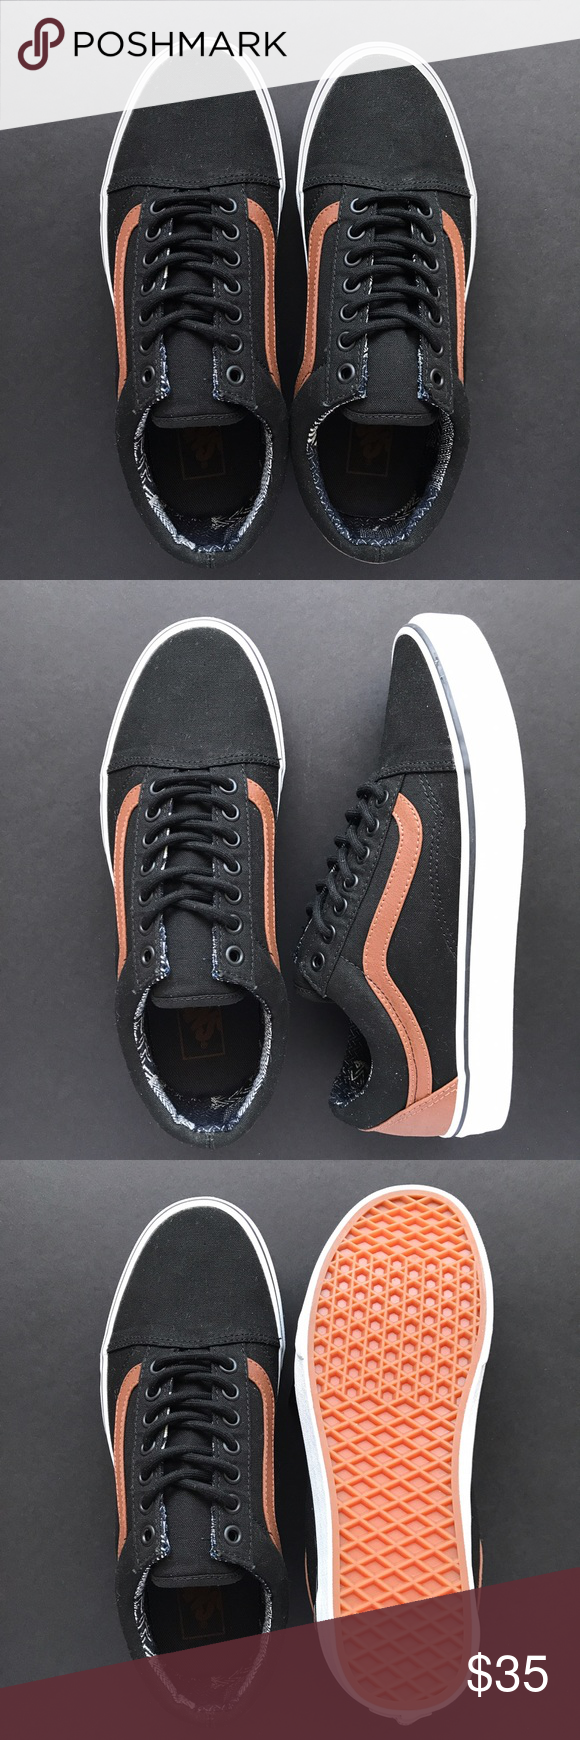 10739fb0e0f Vans Old Skool Black Canvas with Brown Leather Black canvas with brown  leather stripe Vans Old Skool. Patchwork denim linings. Box not included.